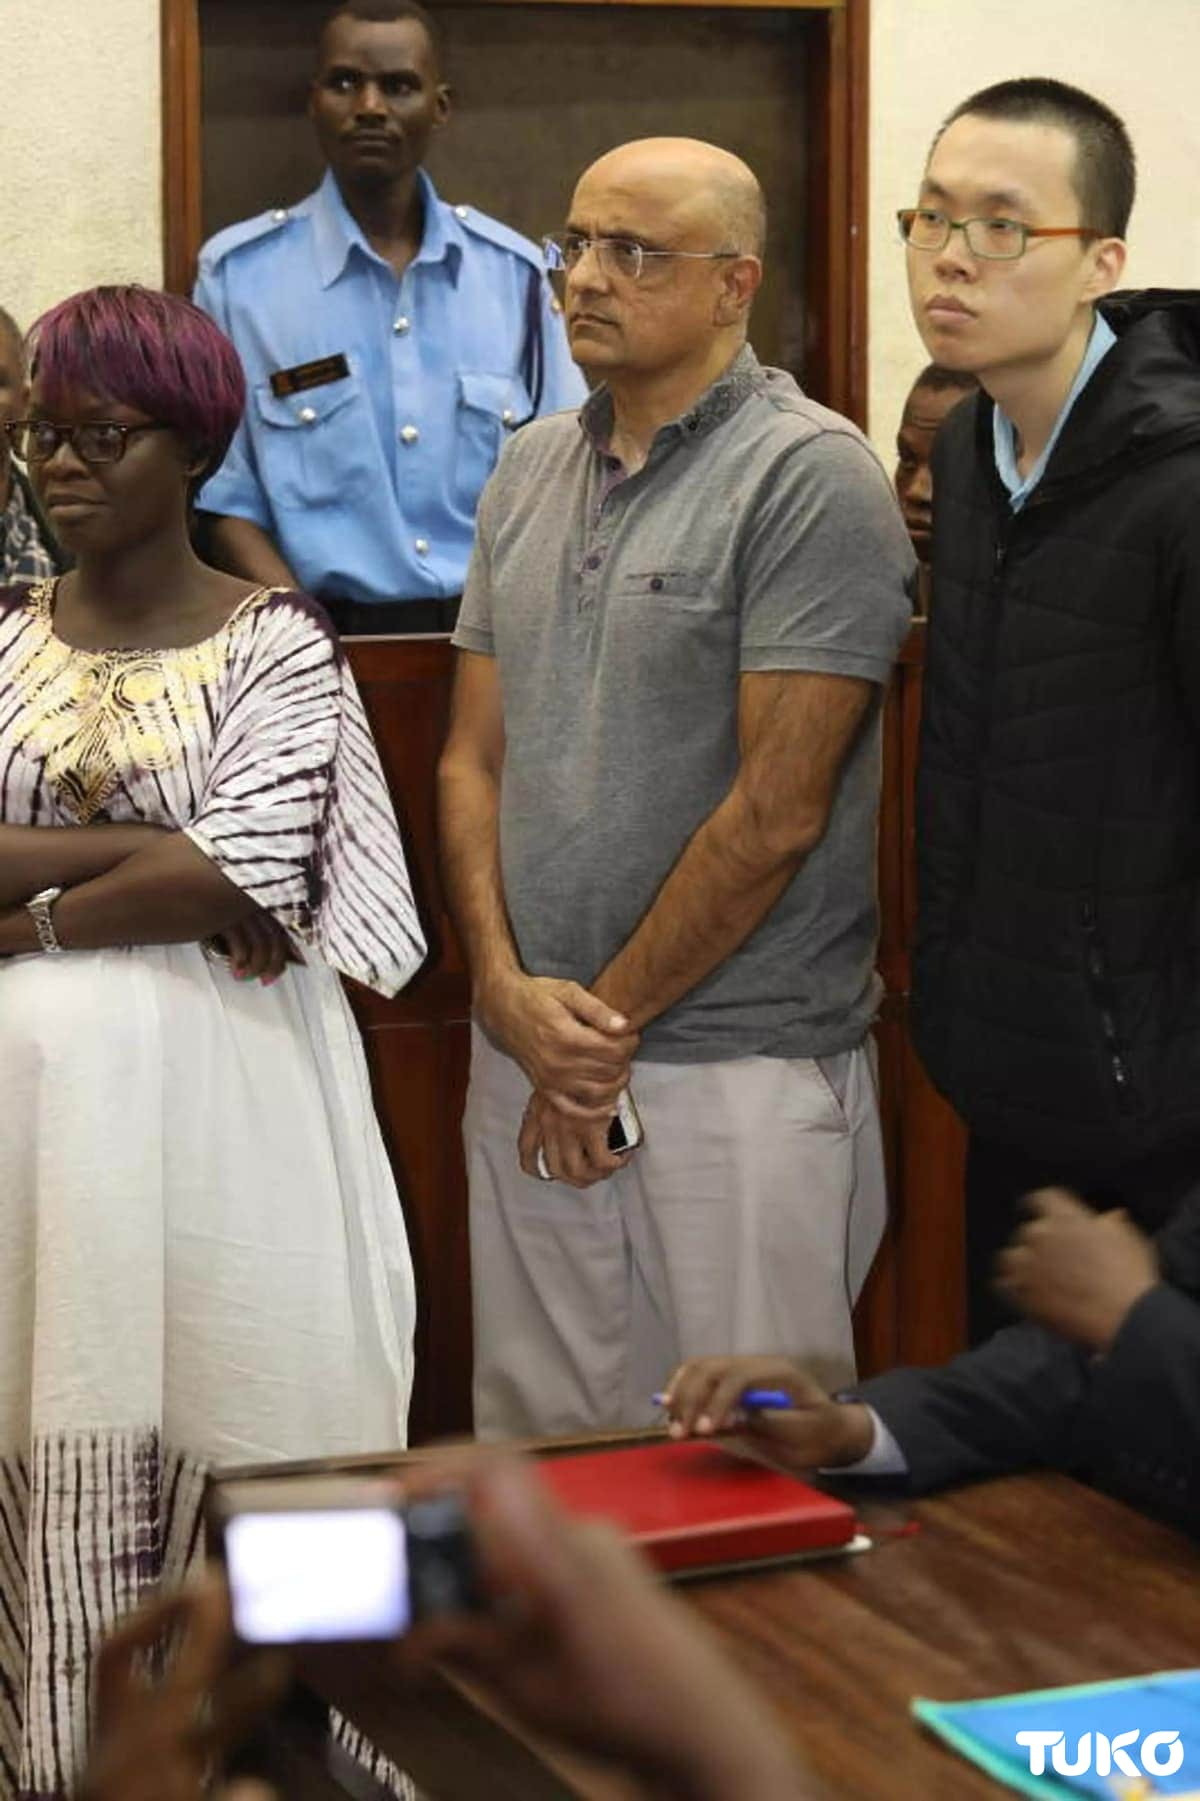 Mombasa woman in court for giving birth and giving baby away to Chinese man